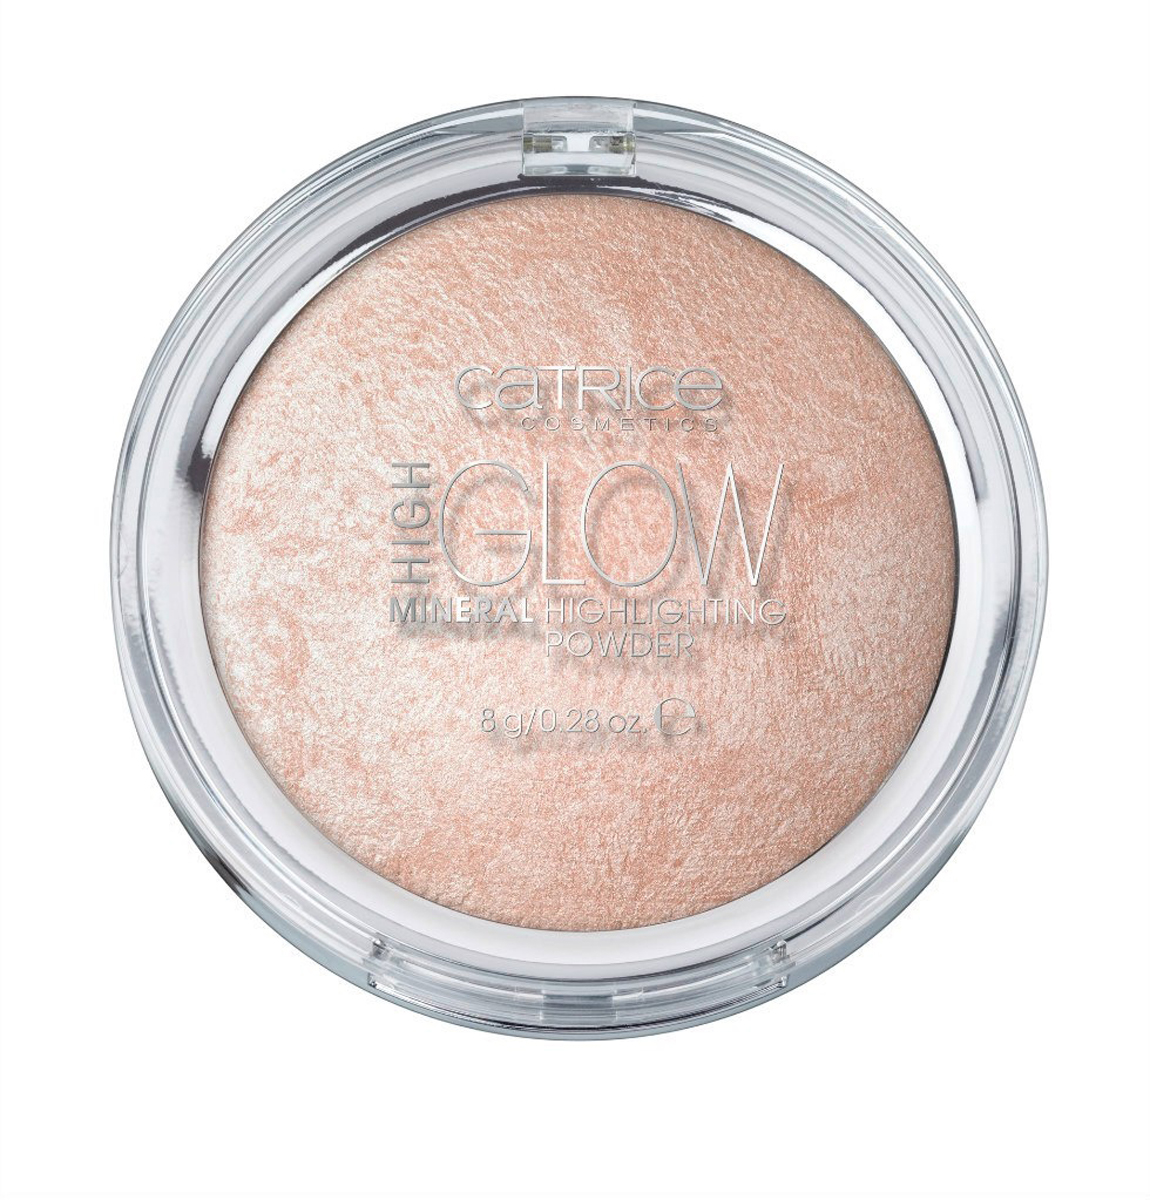 Catrice Хайлайтер High Glow Mineral Highlighting Powder, 90 гр хайлайтер catrice highlighting powder 015 цвет 015 merry cherry blossom variant hex name e7a5ab